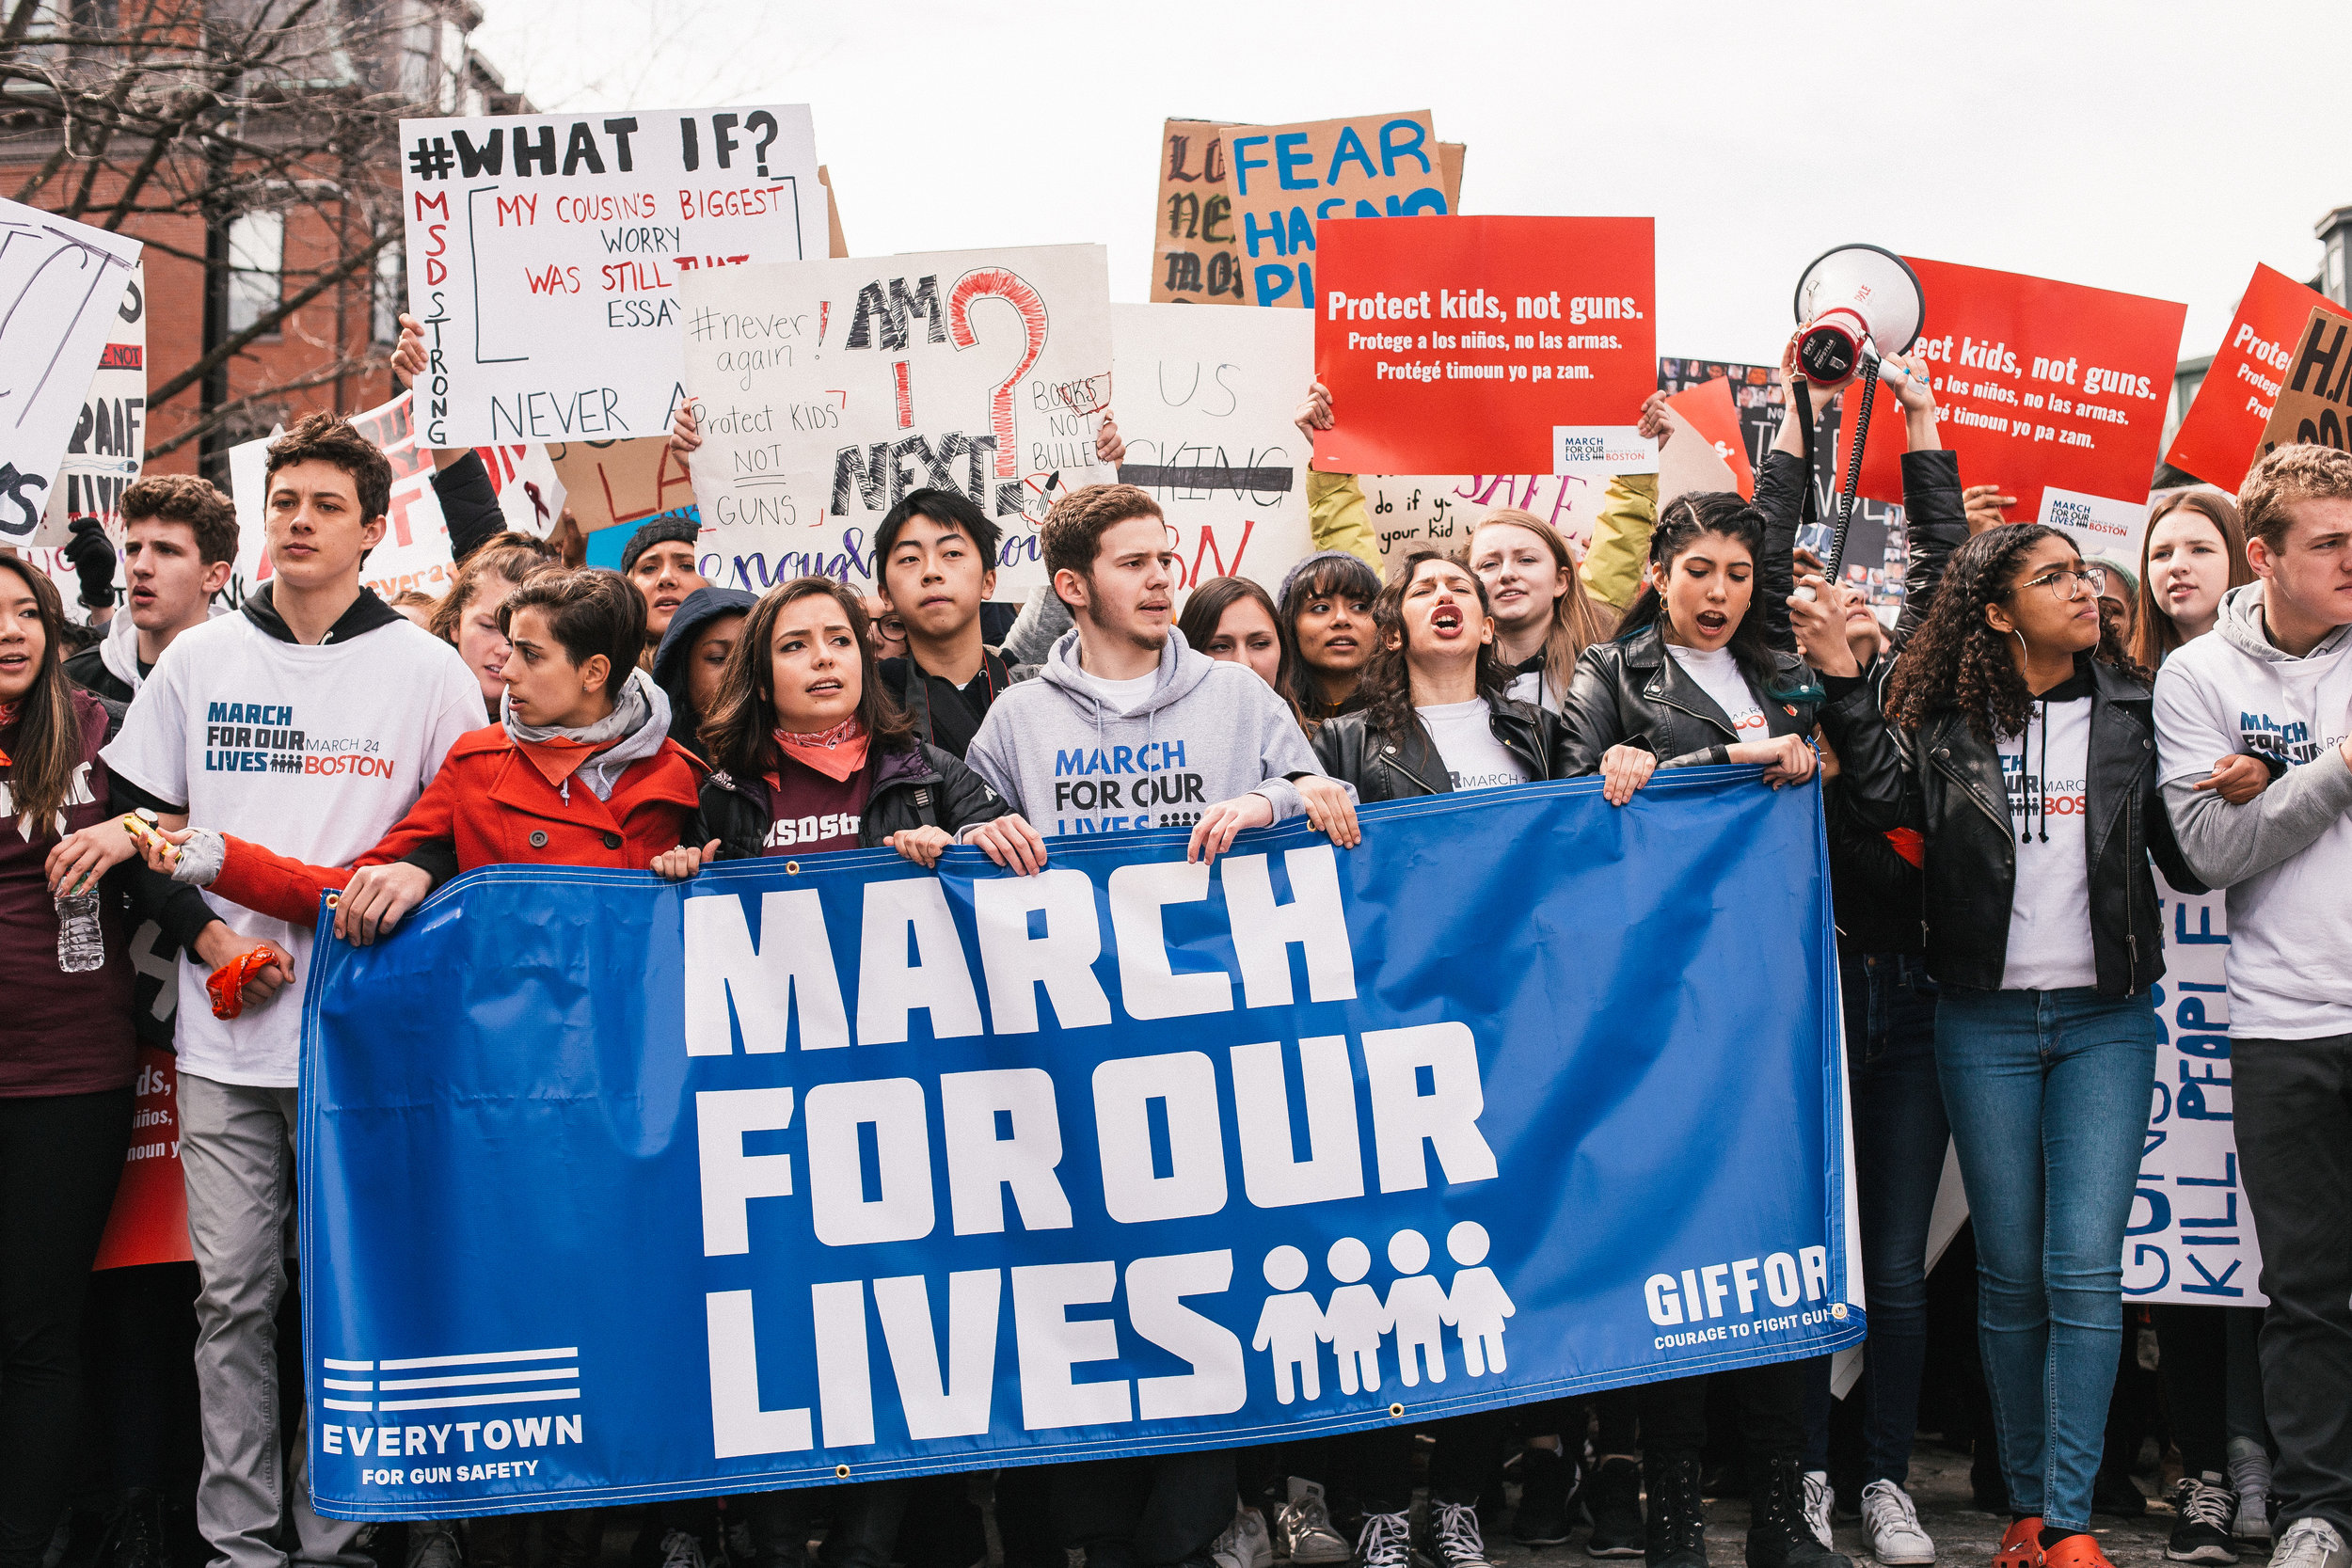 March For Our Lives Boston 3.24.18-8.jpg